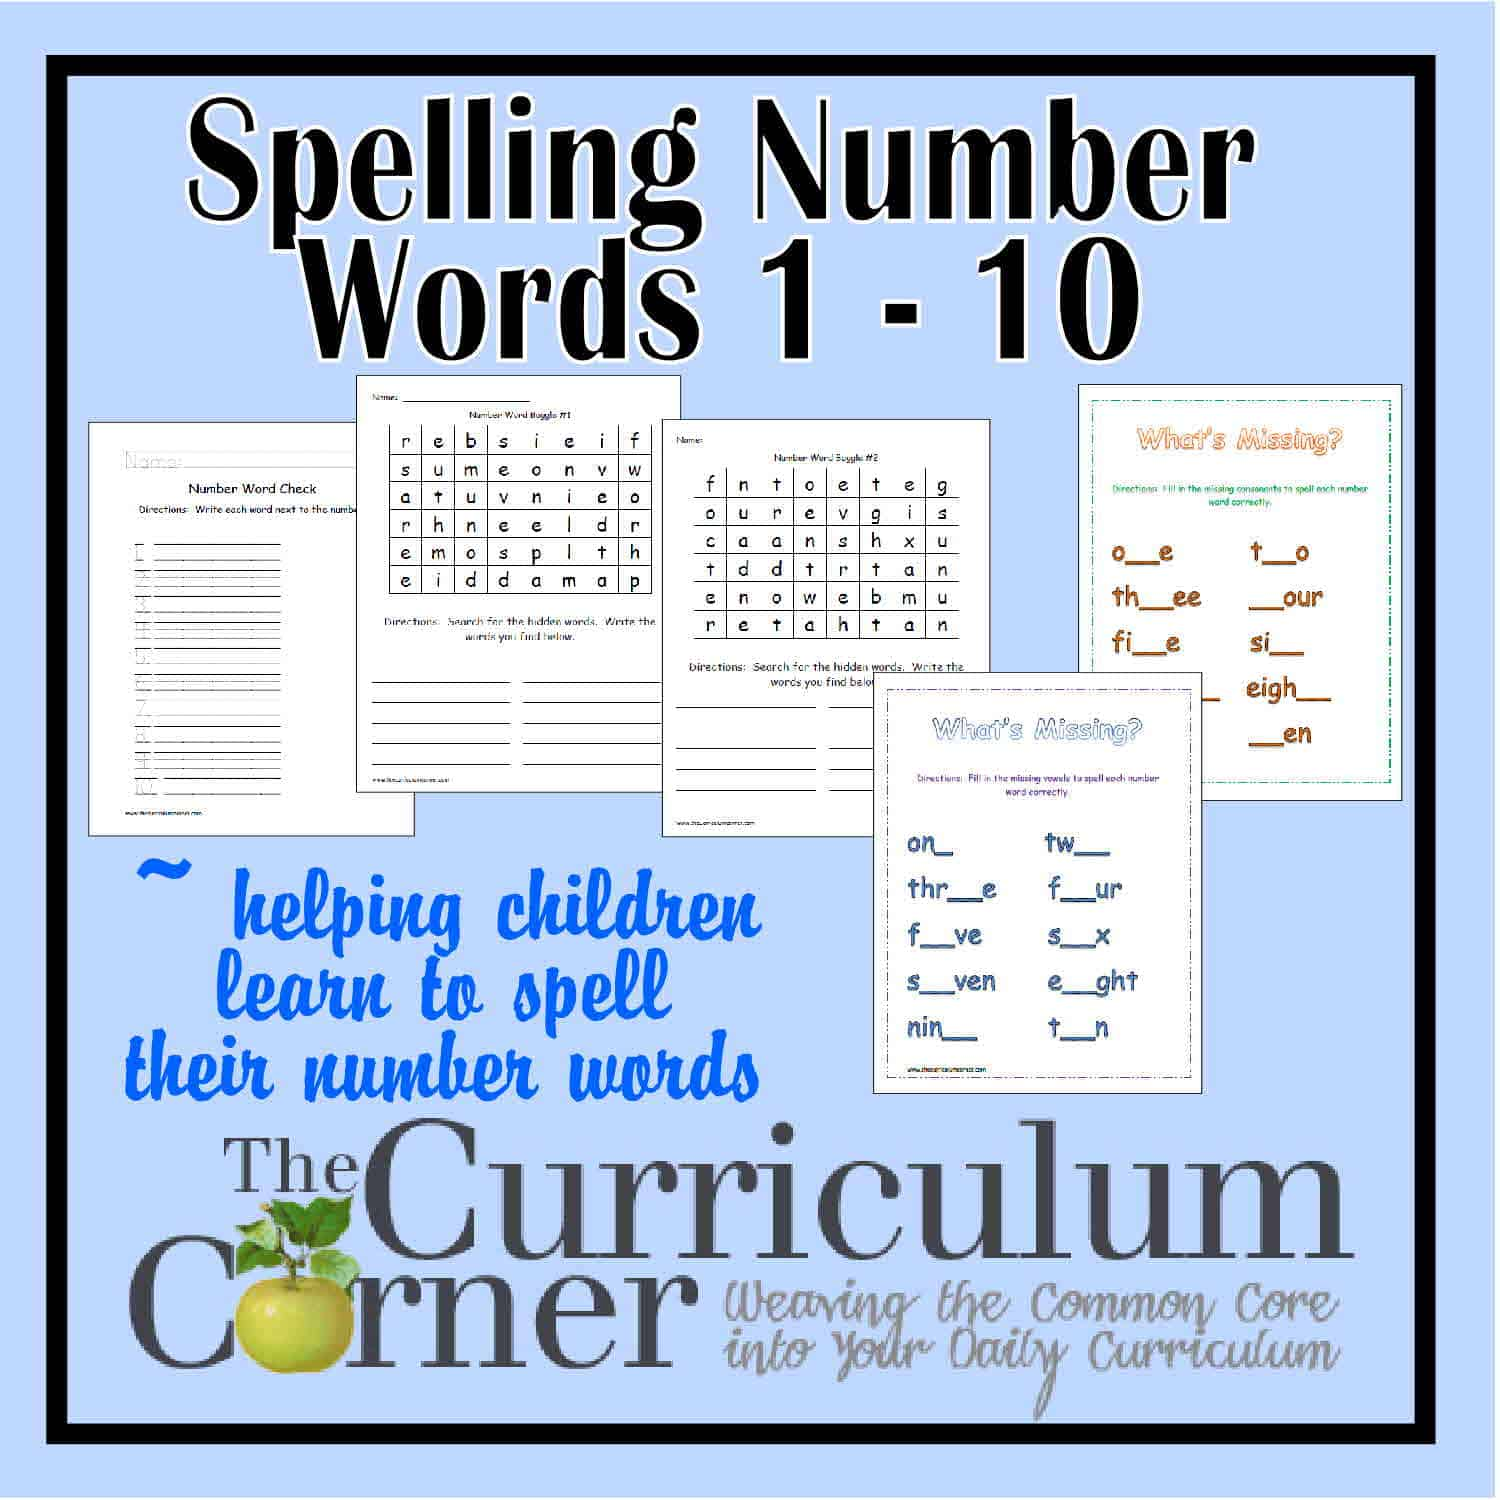 numbers or words in an essay Re: how do you calculate the exact number of words in your essay if you are using a program such as ms word, there is a word count system available if you are writing it by hand, then you will have to keep a count.